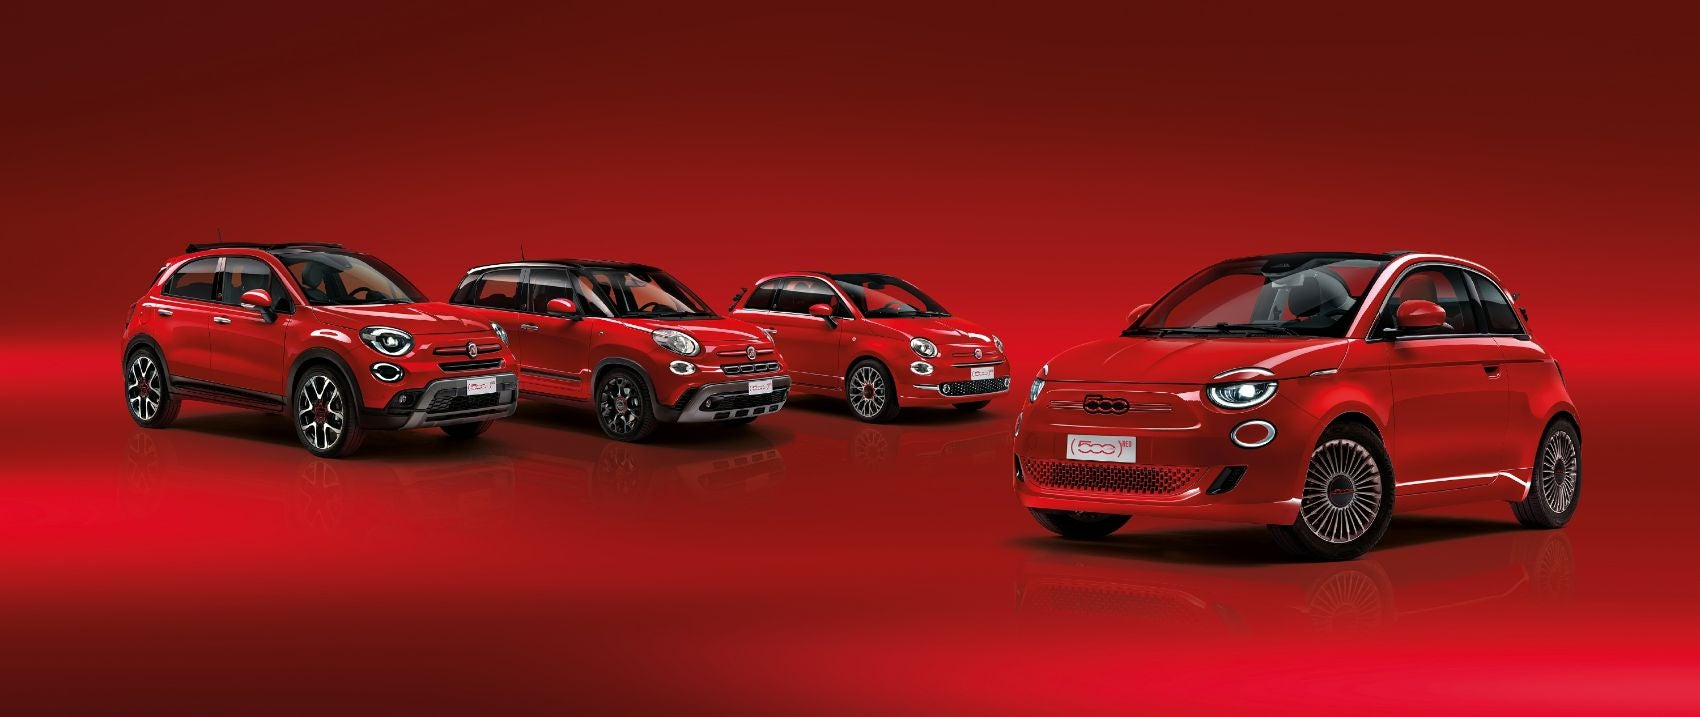 (RED) Forms Multi-Brand Partnership With Jeep, Fiat & Ram To Help Fight COVID-19